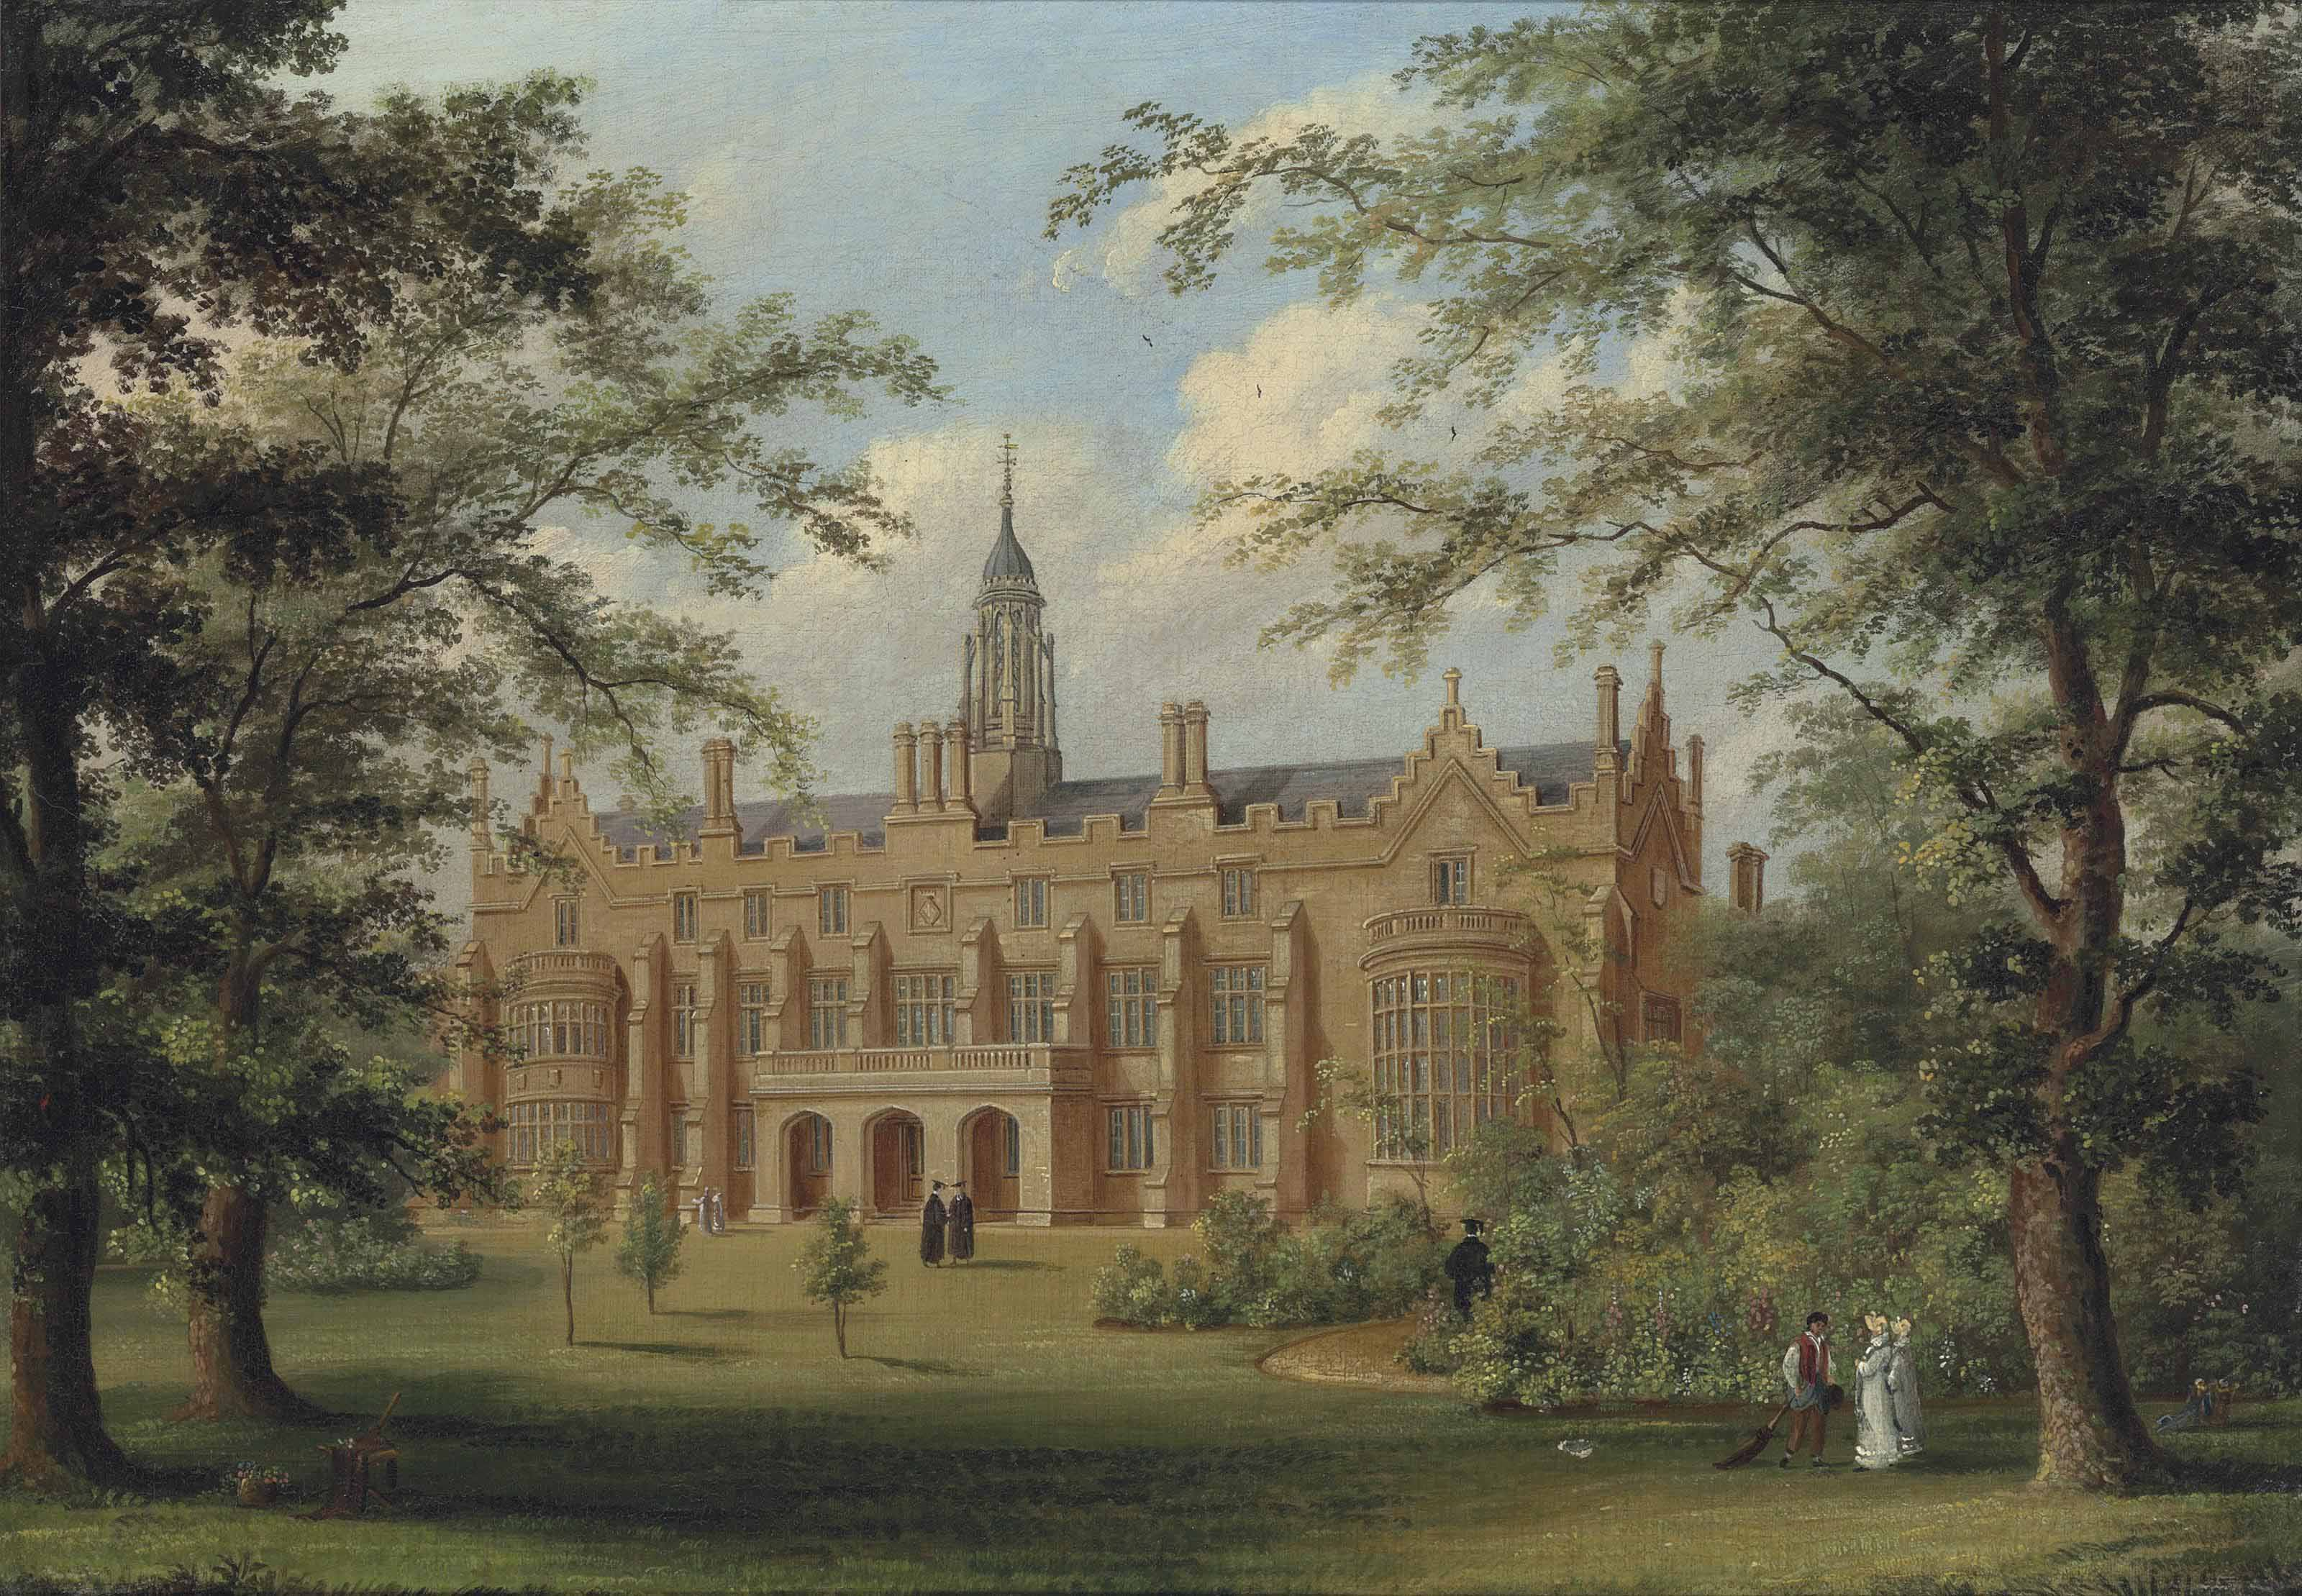 A view of Sidney Sussex College, Cambridge, with figures on the grass